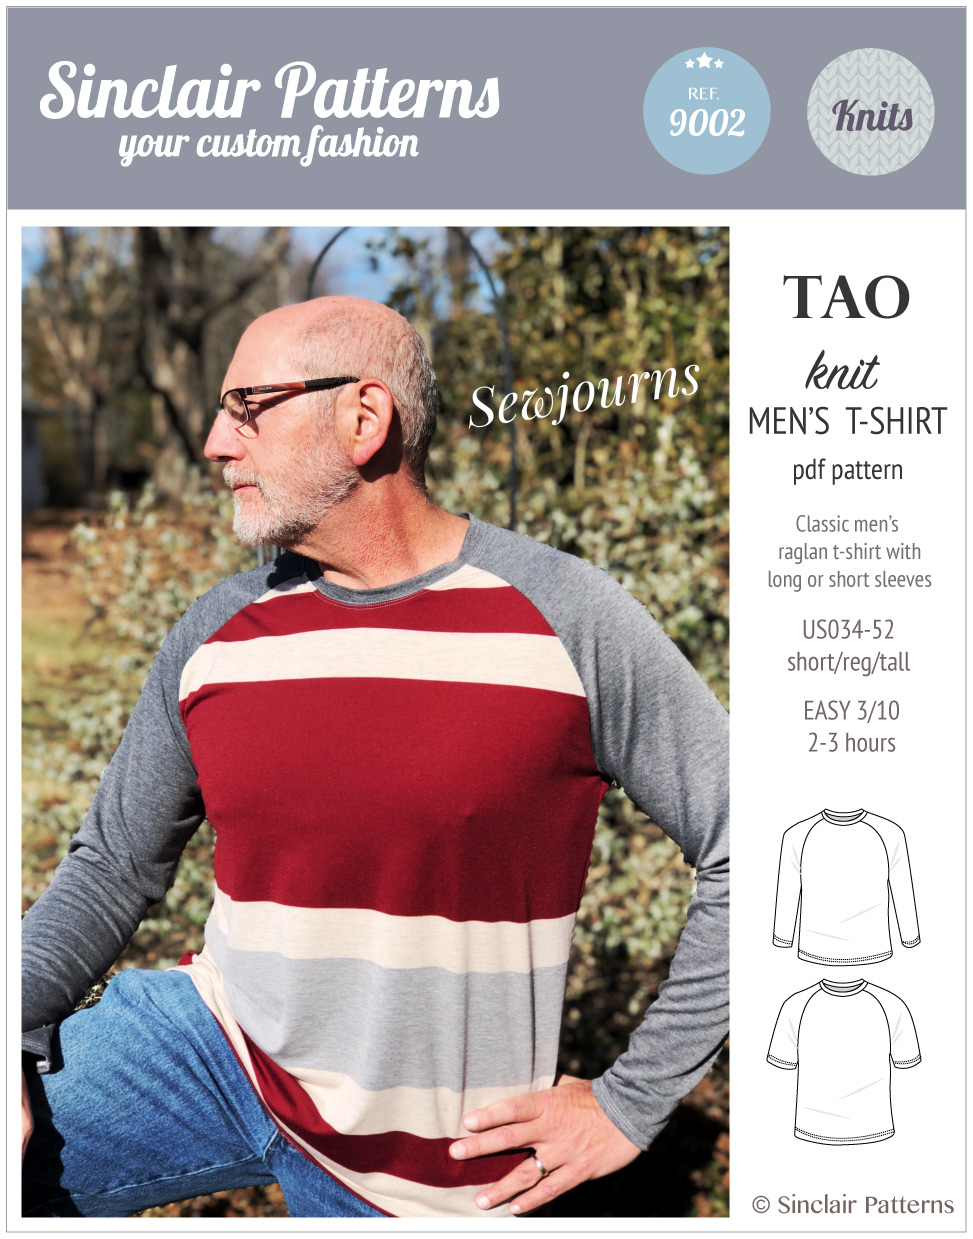 Sinclair Patterns - Pdf sewing pattern Tao classic raglan t-shirt for men